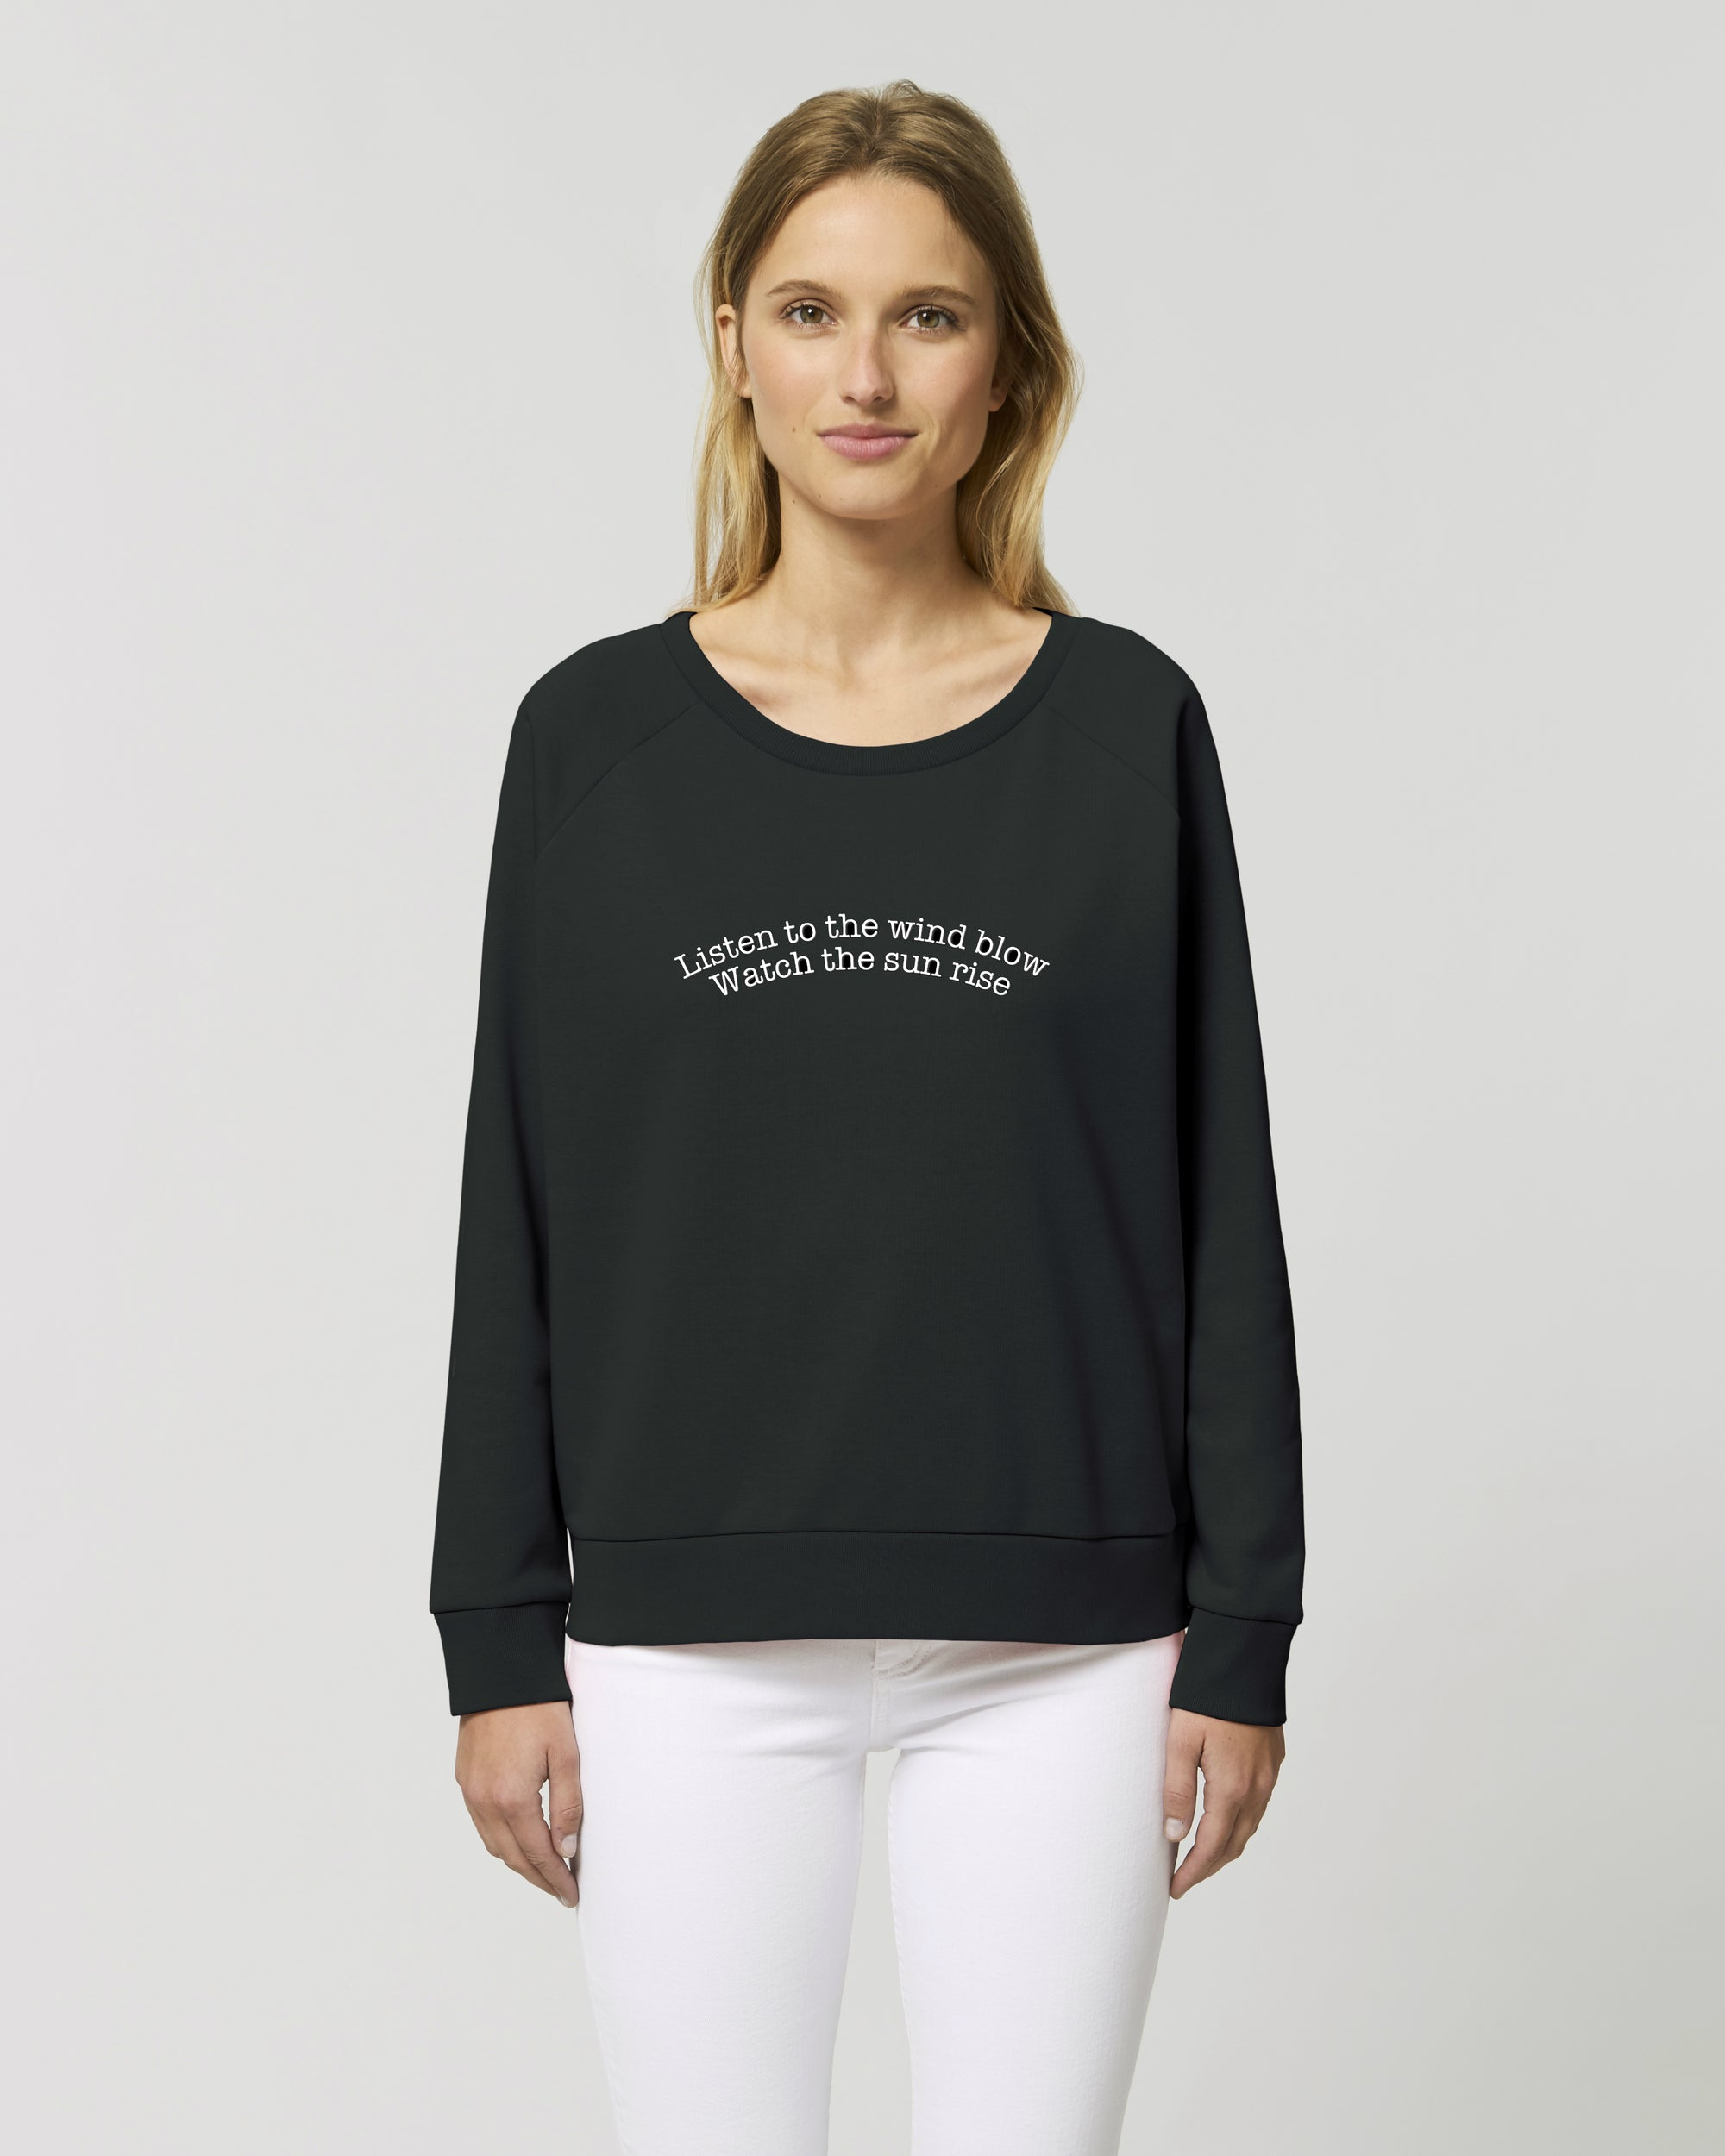 'LISTEN TO THE WIND BLOW, WATCH THE SUN RISE' EMBROIDERED WOMEN'S RELAXED FIT ORGANIC COTTON SWEATSHIRT